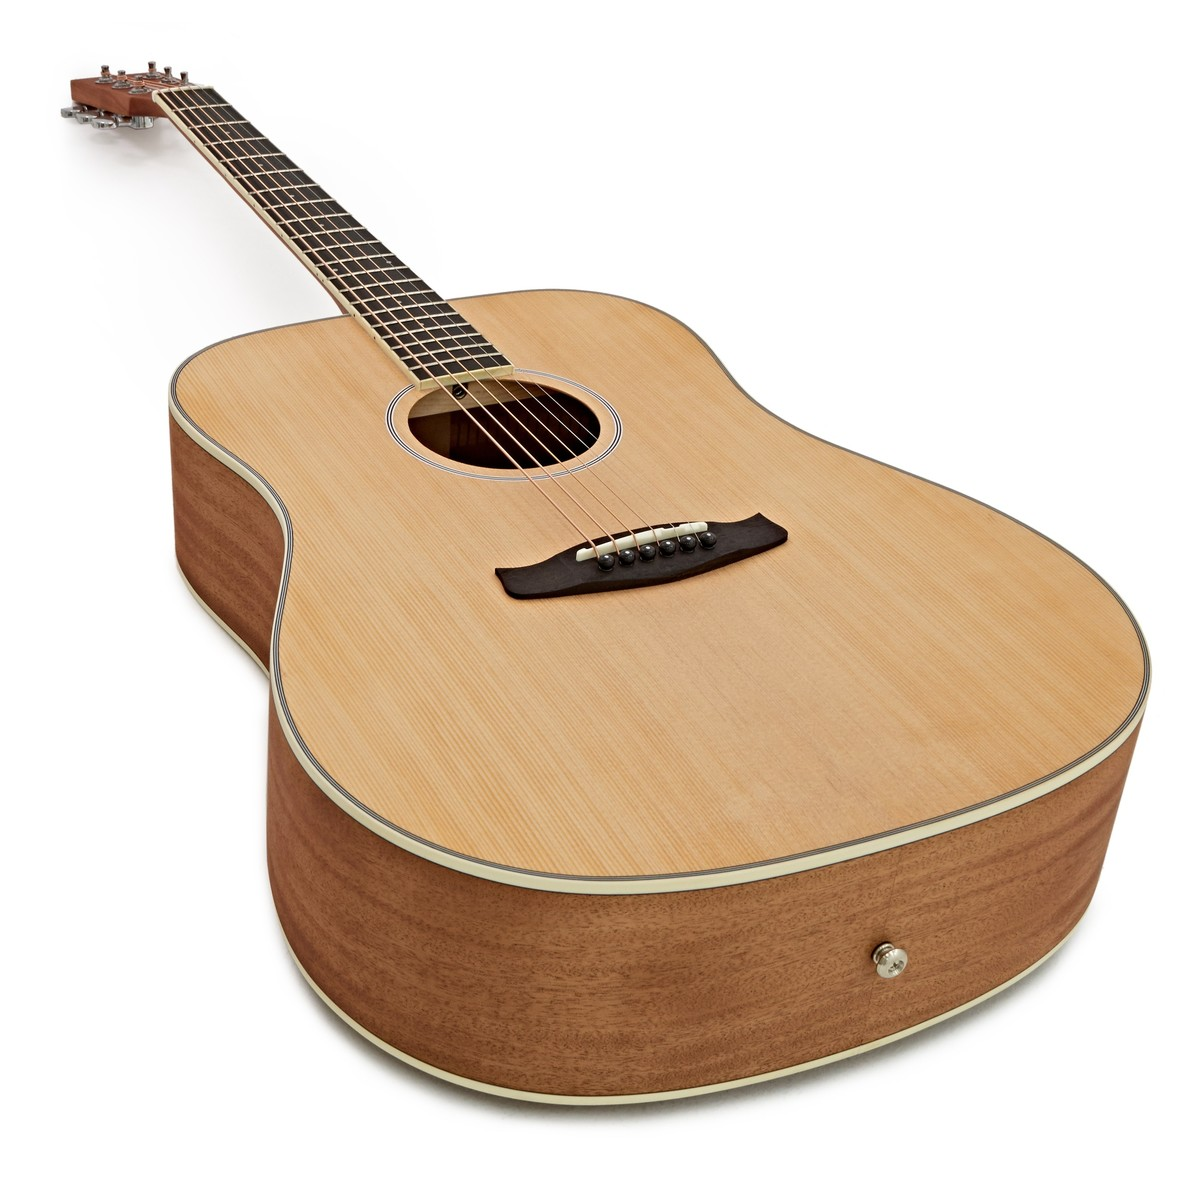 Tanglewood TWIDN Inscription Dreadnought Acoustic